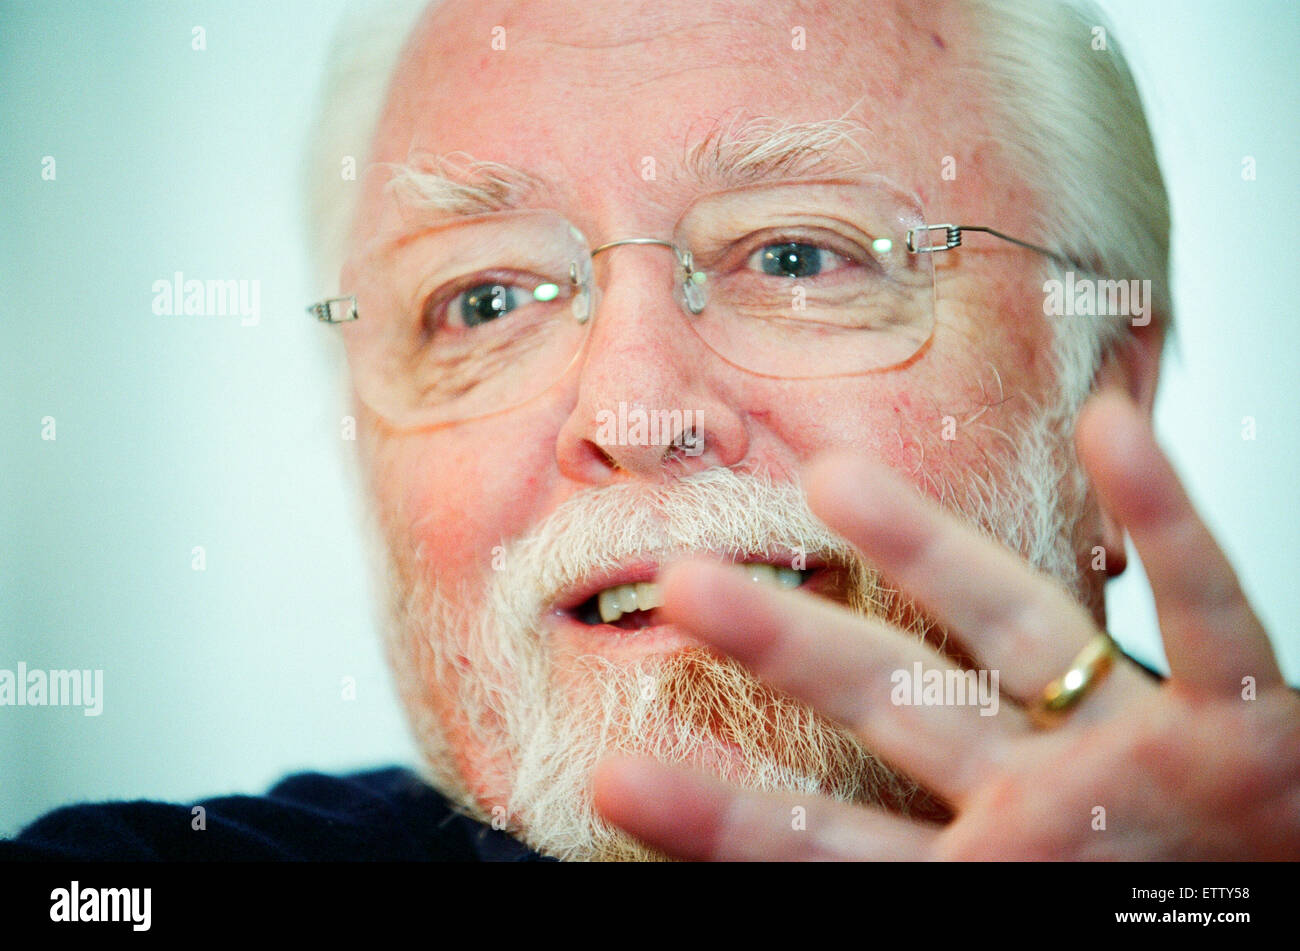 Sir Richard Attenborough, actor, film director, film producer, and entrepreneur. Pictured during interview at The Stock Photo